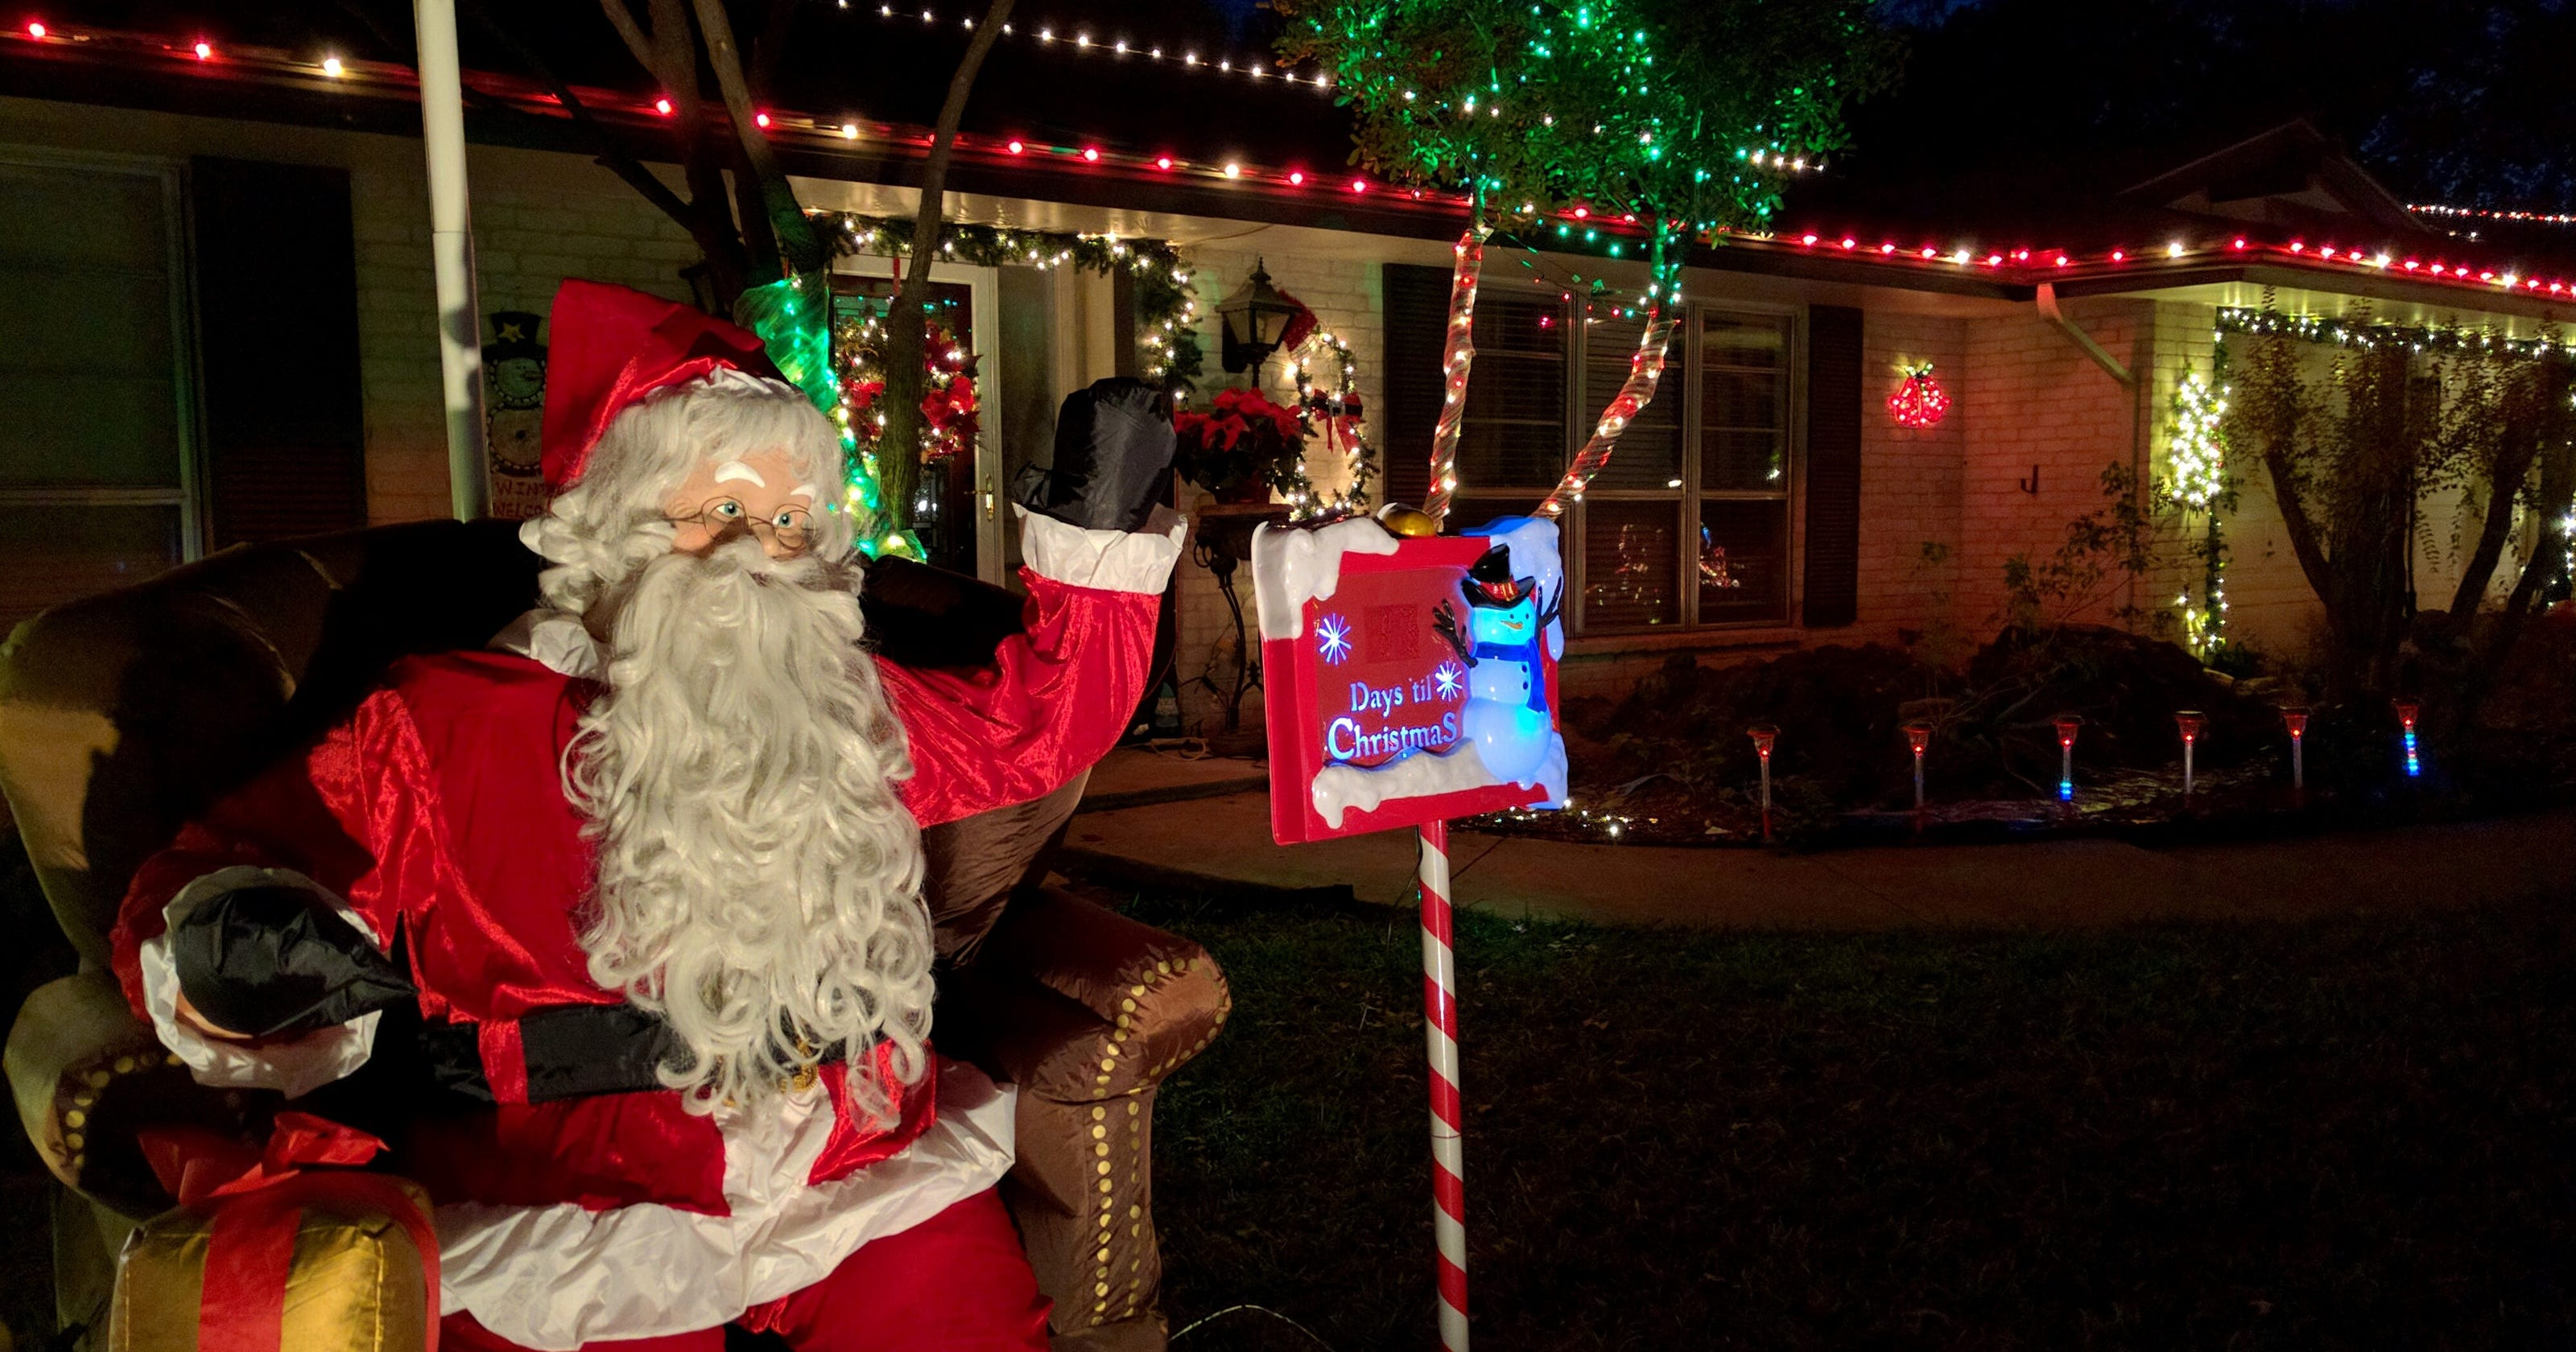 windcrest competes for most outrageous holiday display - Windcrest Christmas Lights